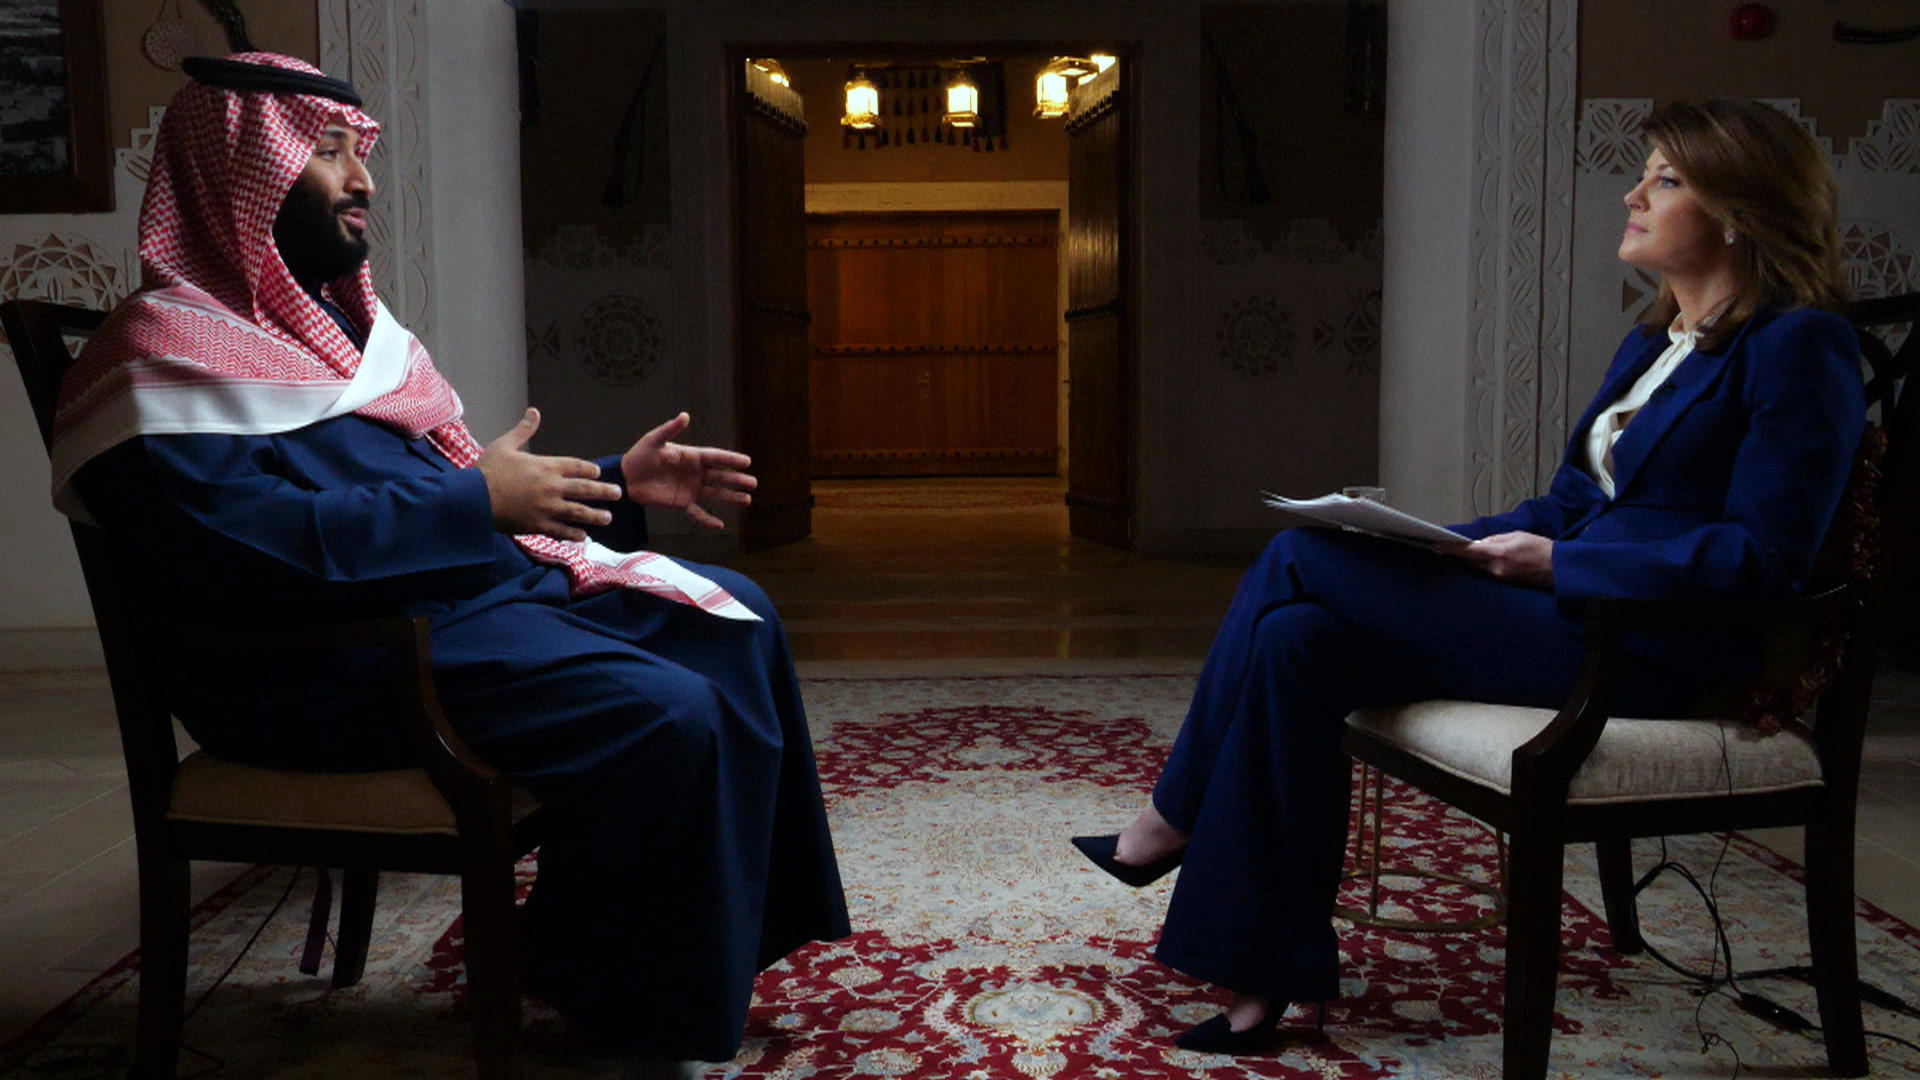 Mohammed bin Salman, Saudi crown prince 60 Minutes Interview with